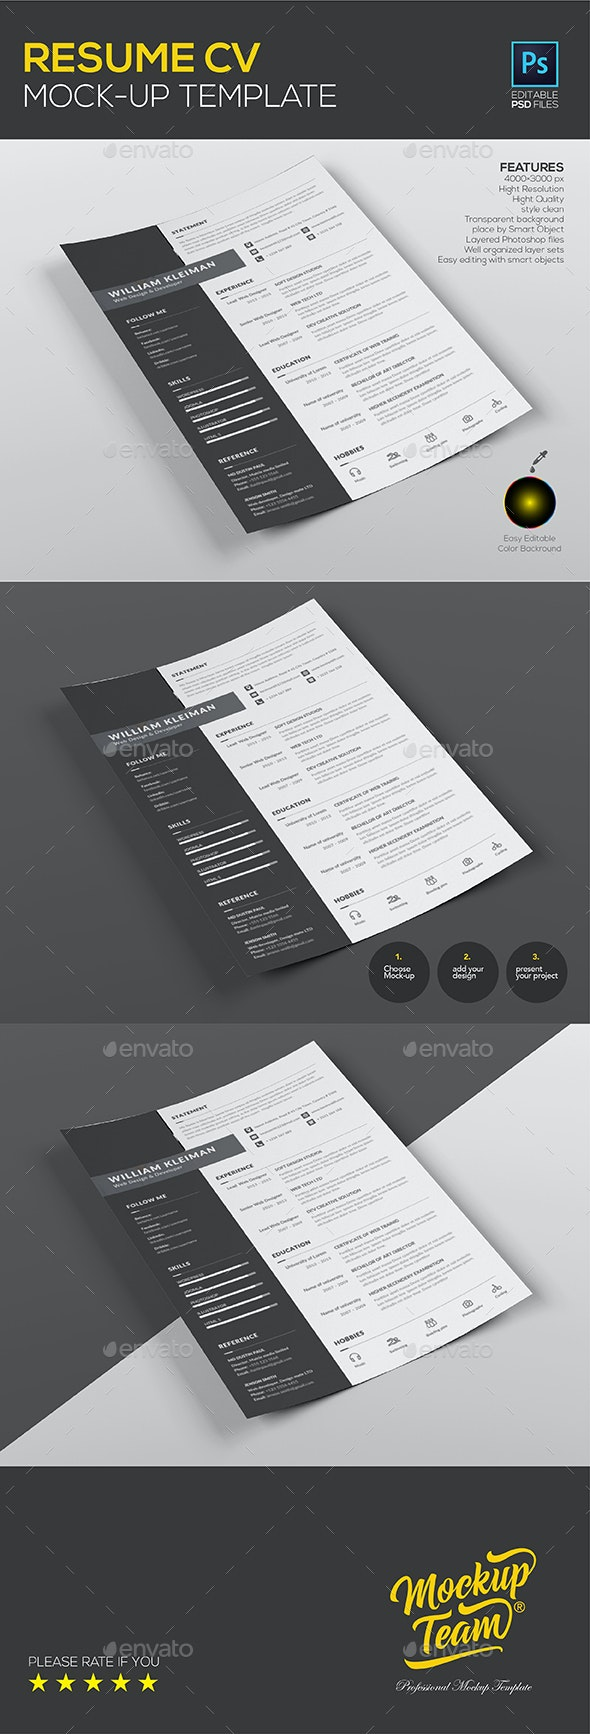 Resume CV Mock up Template - Print Product Mock-Ups